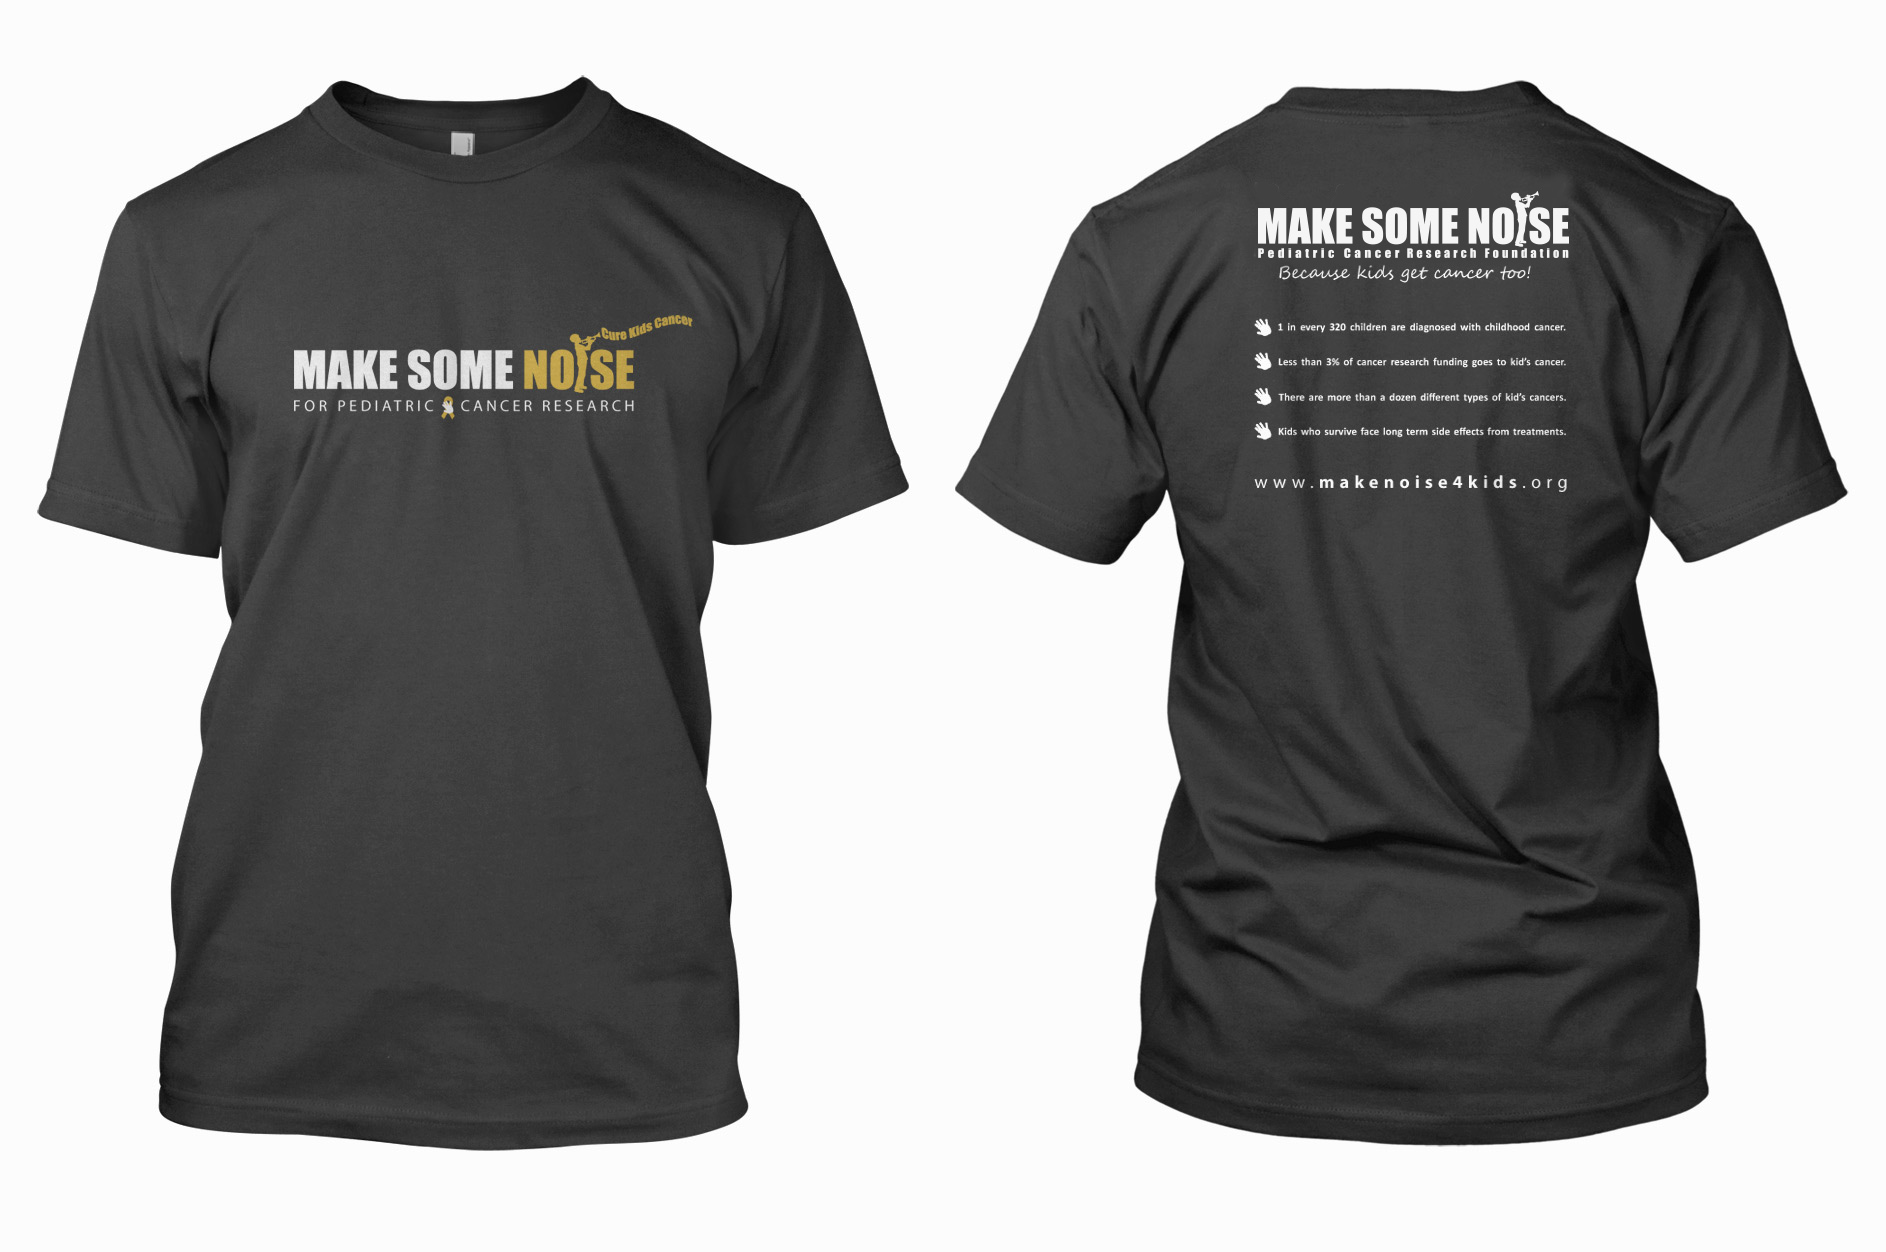 Make Some Noise T's in Grey